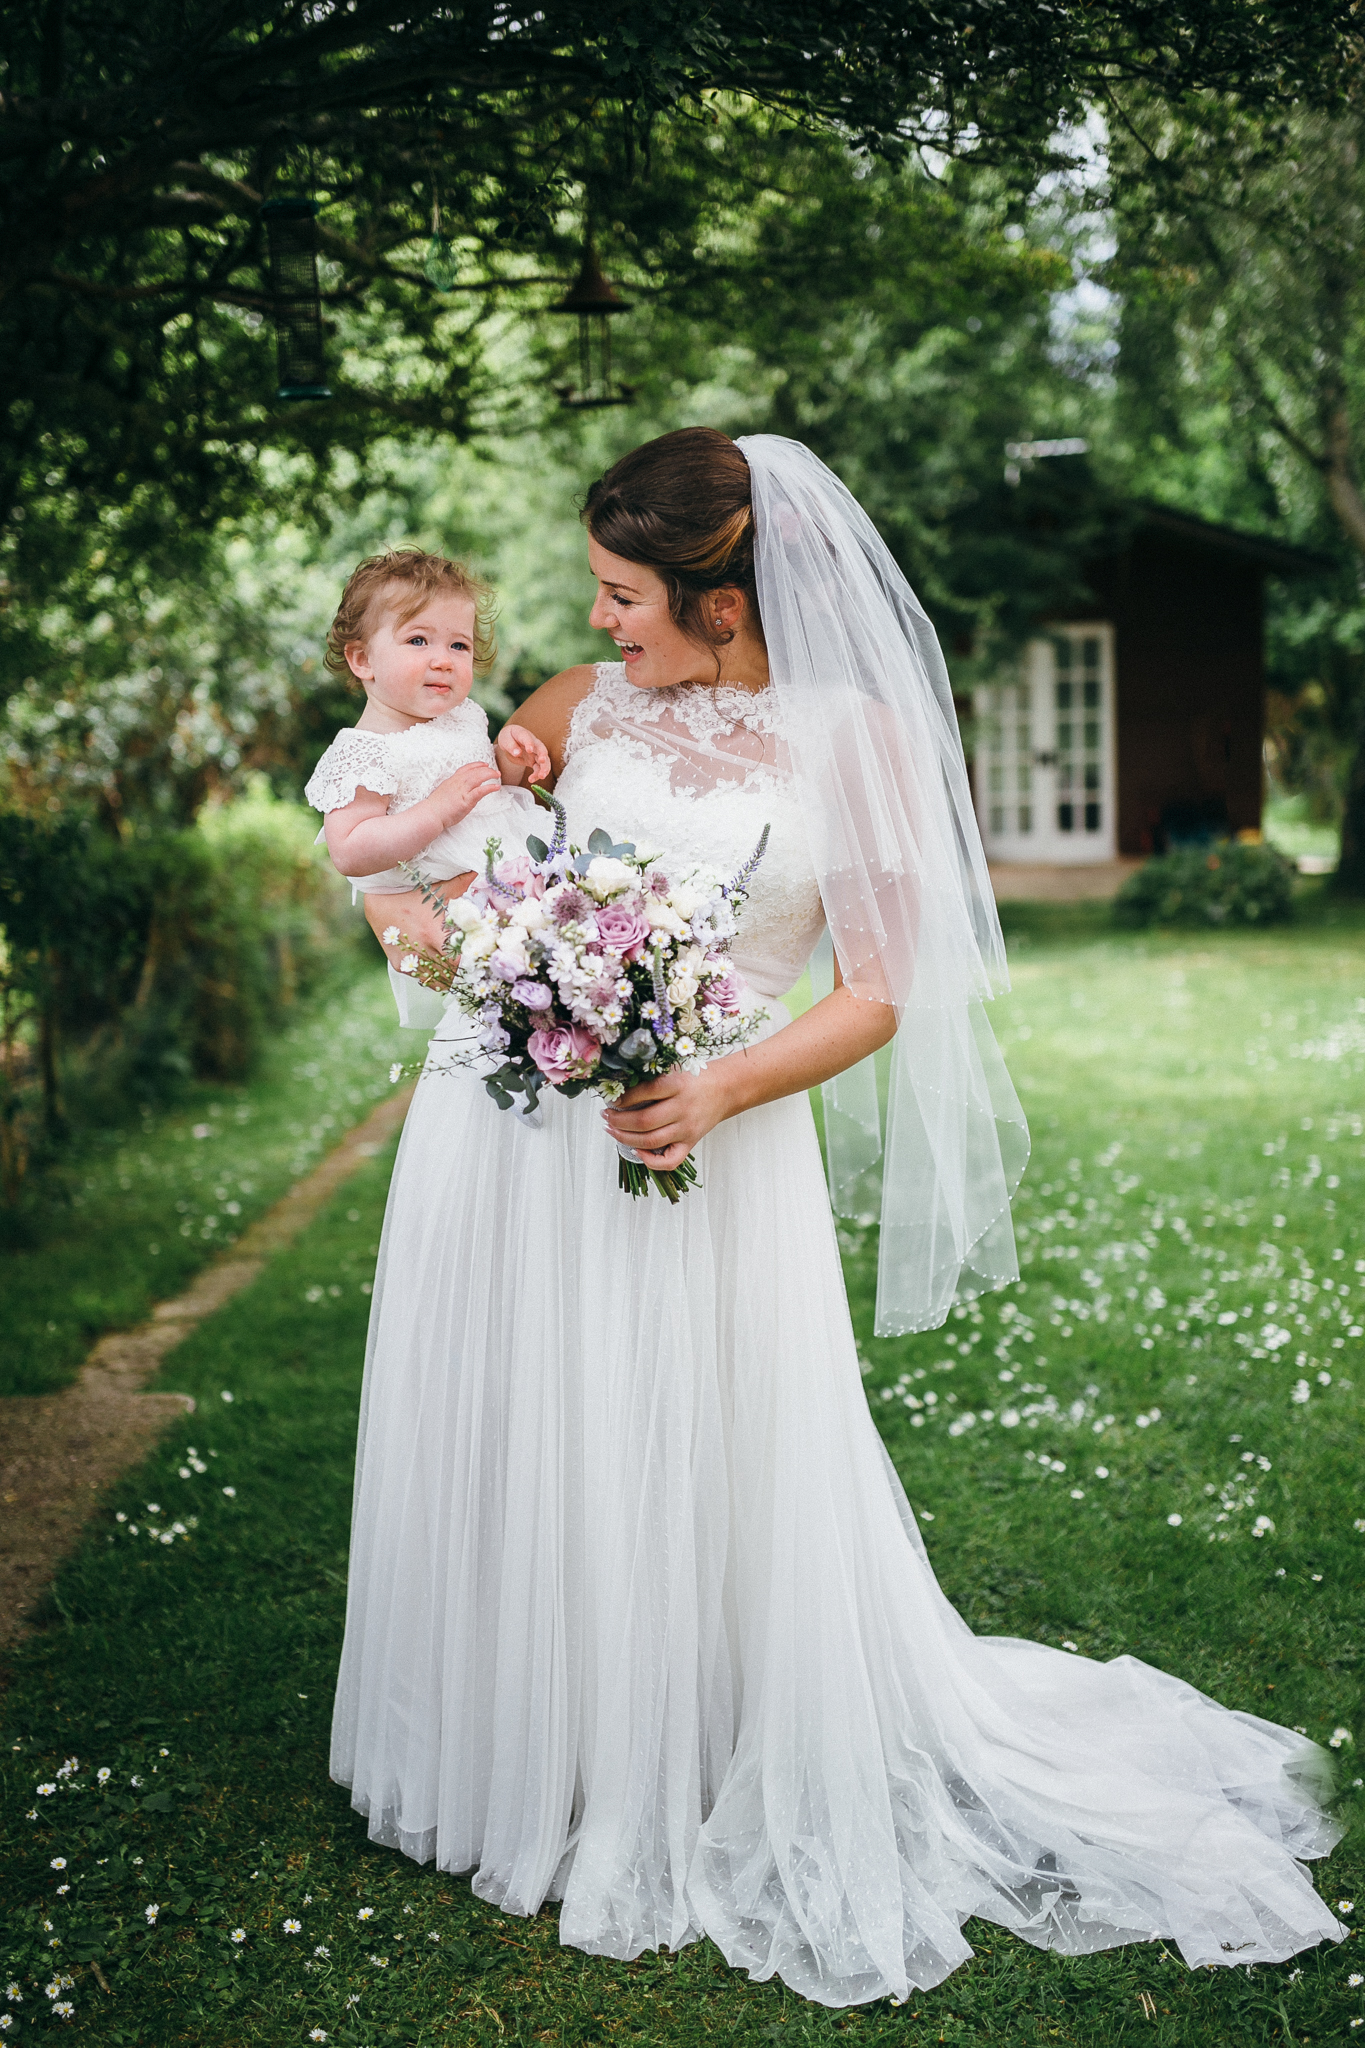 boho dress colorful rustic and vintage tipi wedding photography in surrey bride and daughter